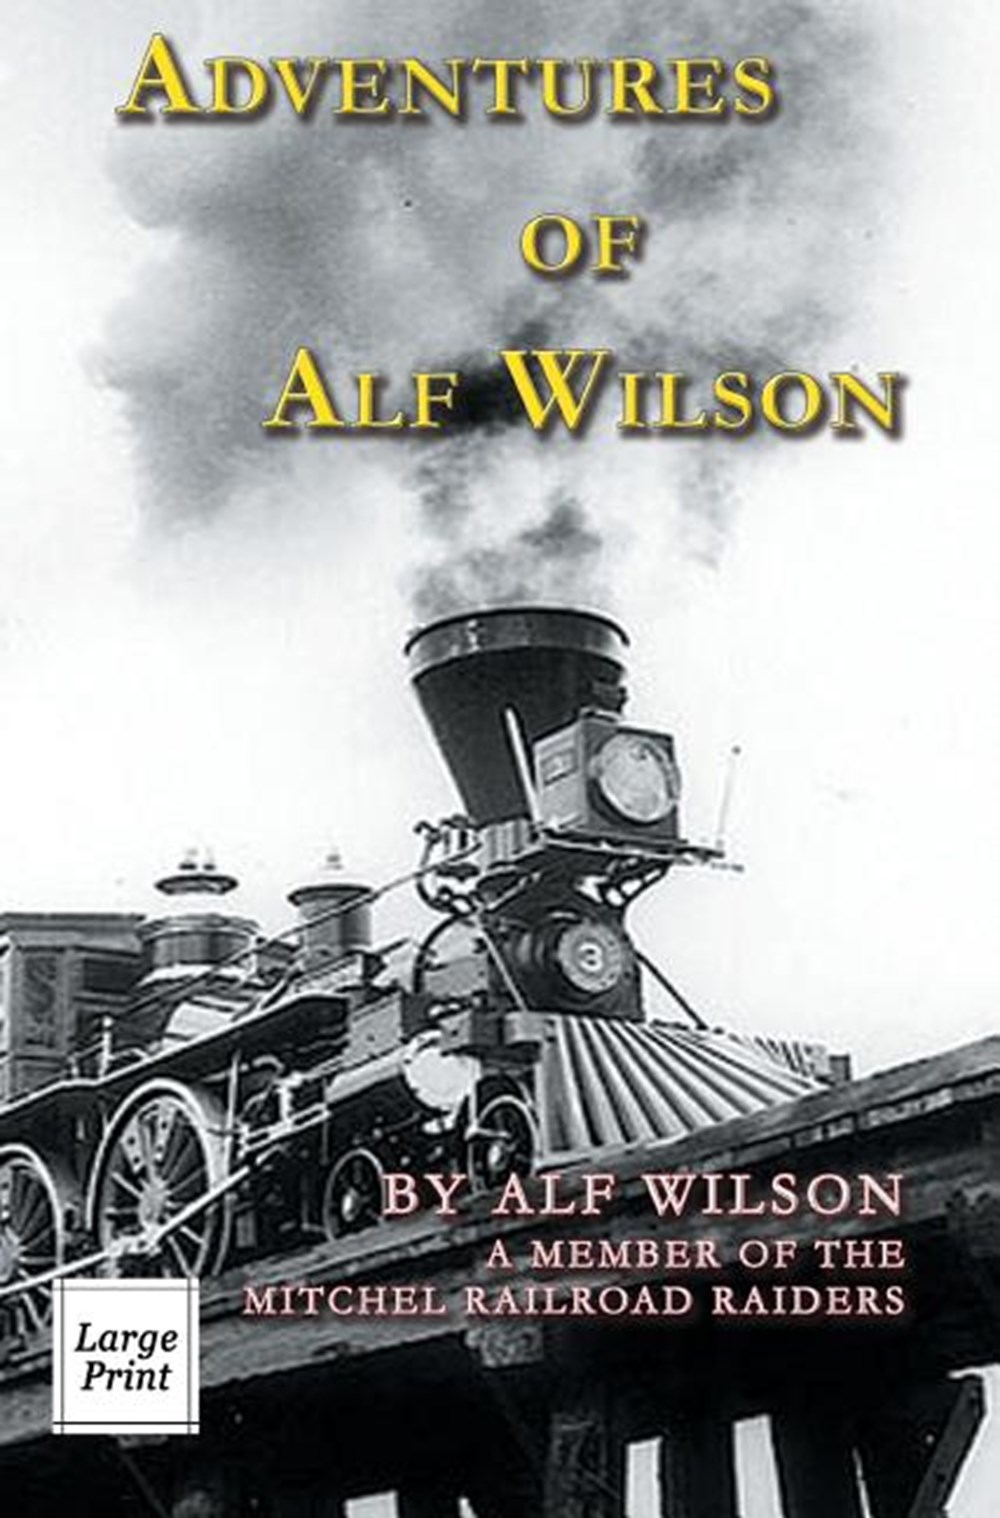 Adventures of Alf Wilson A Member of the Mitchel Railroad Raiders